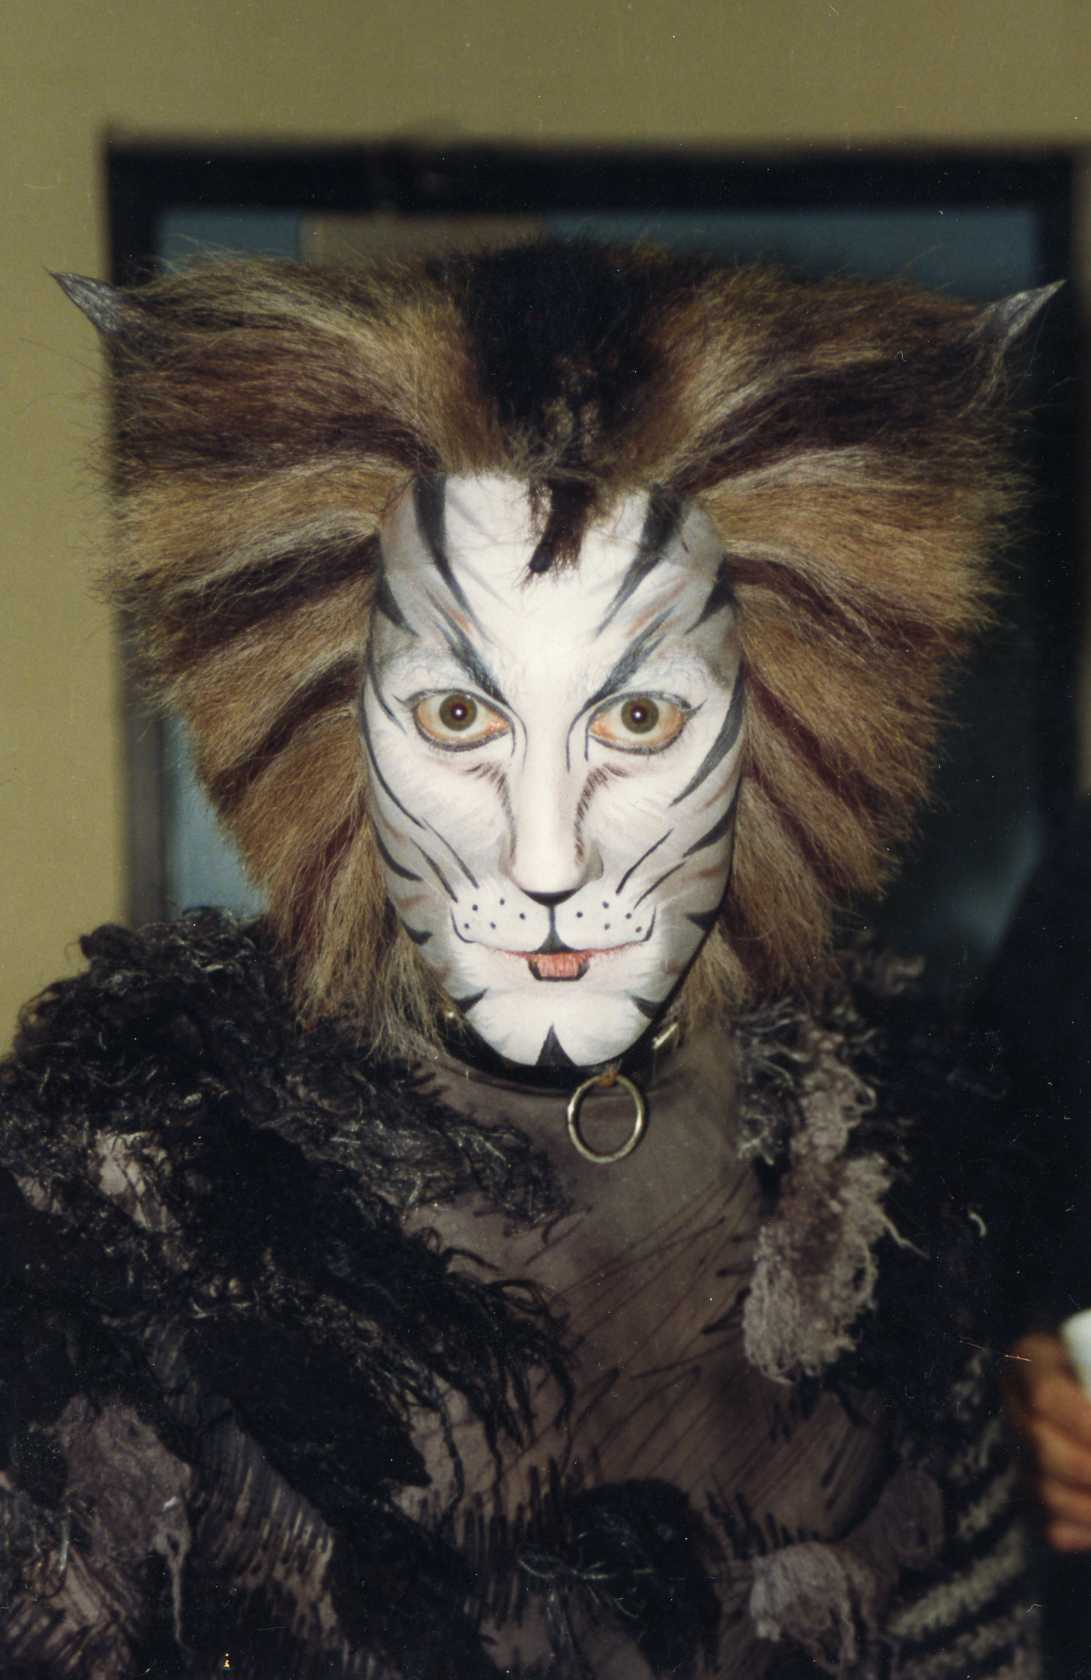 Josef Reiter in Cats